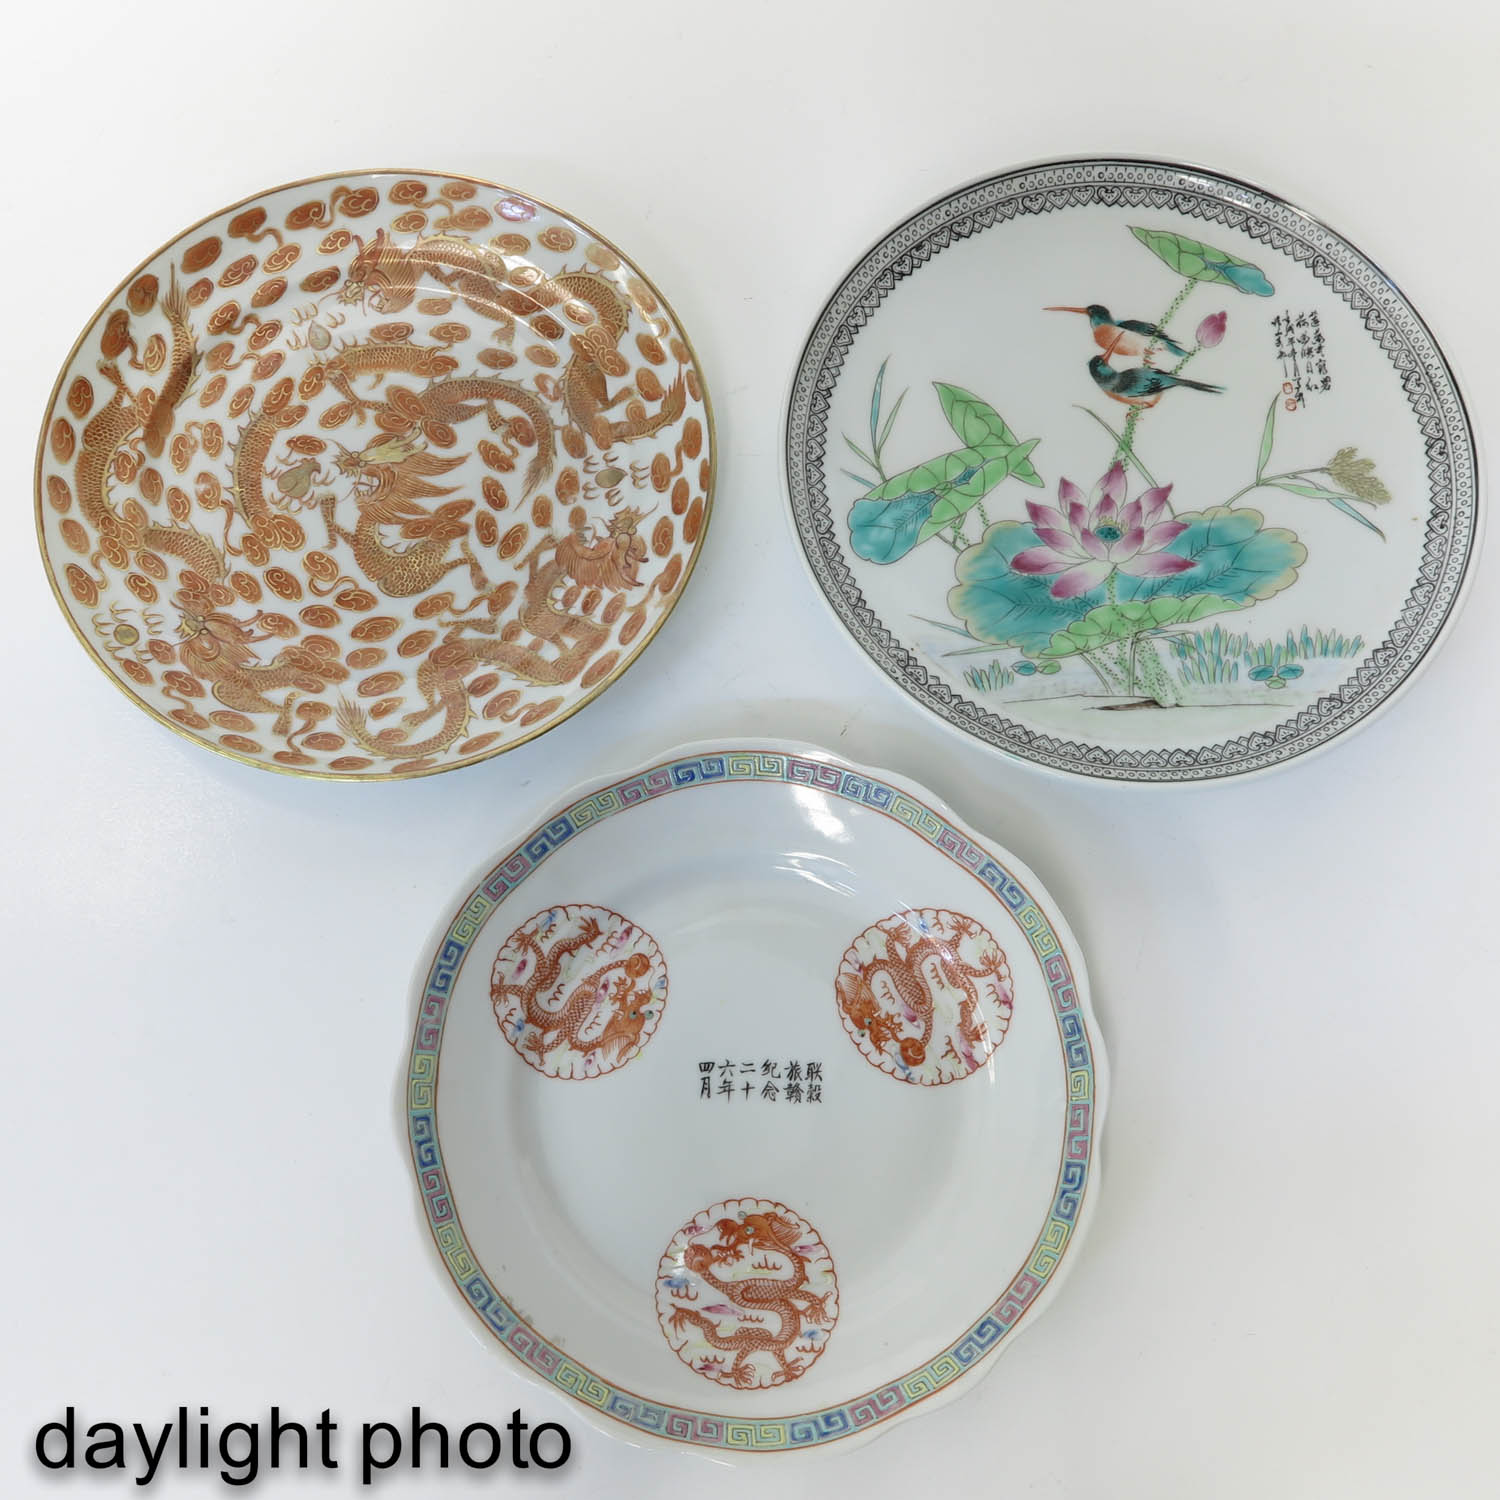 A Collection of 3 Plates - Image 9 of 10